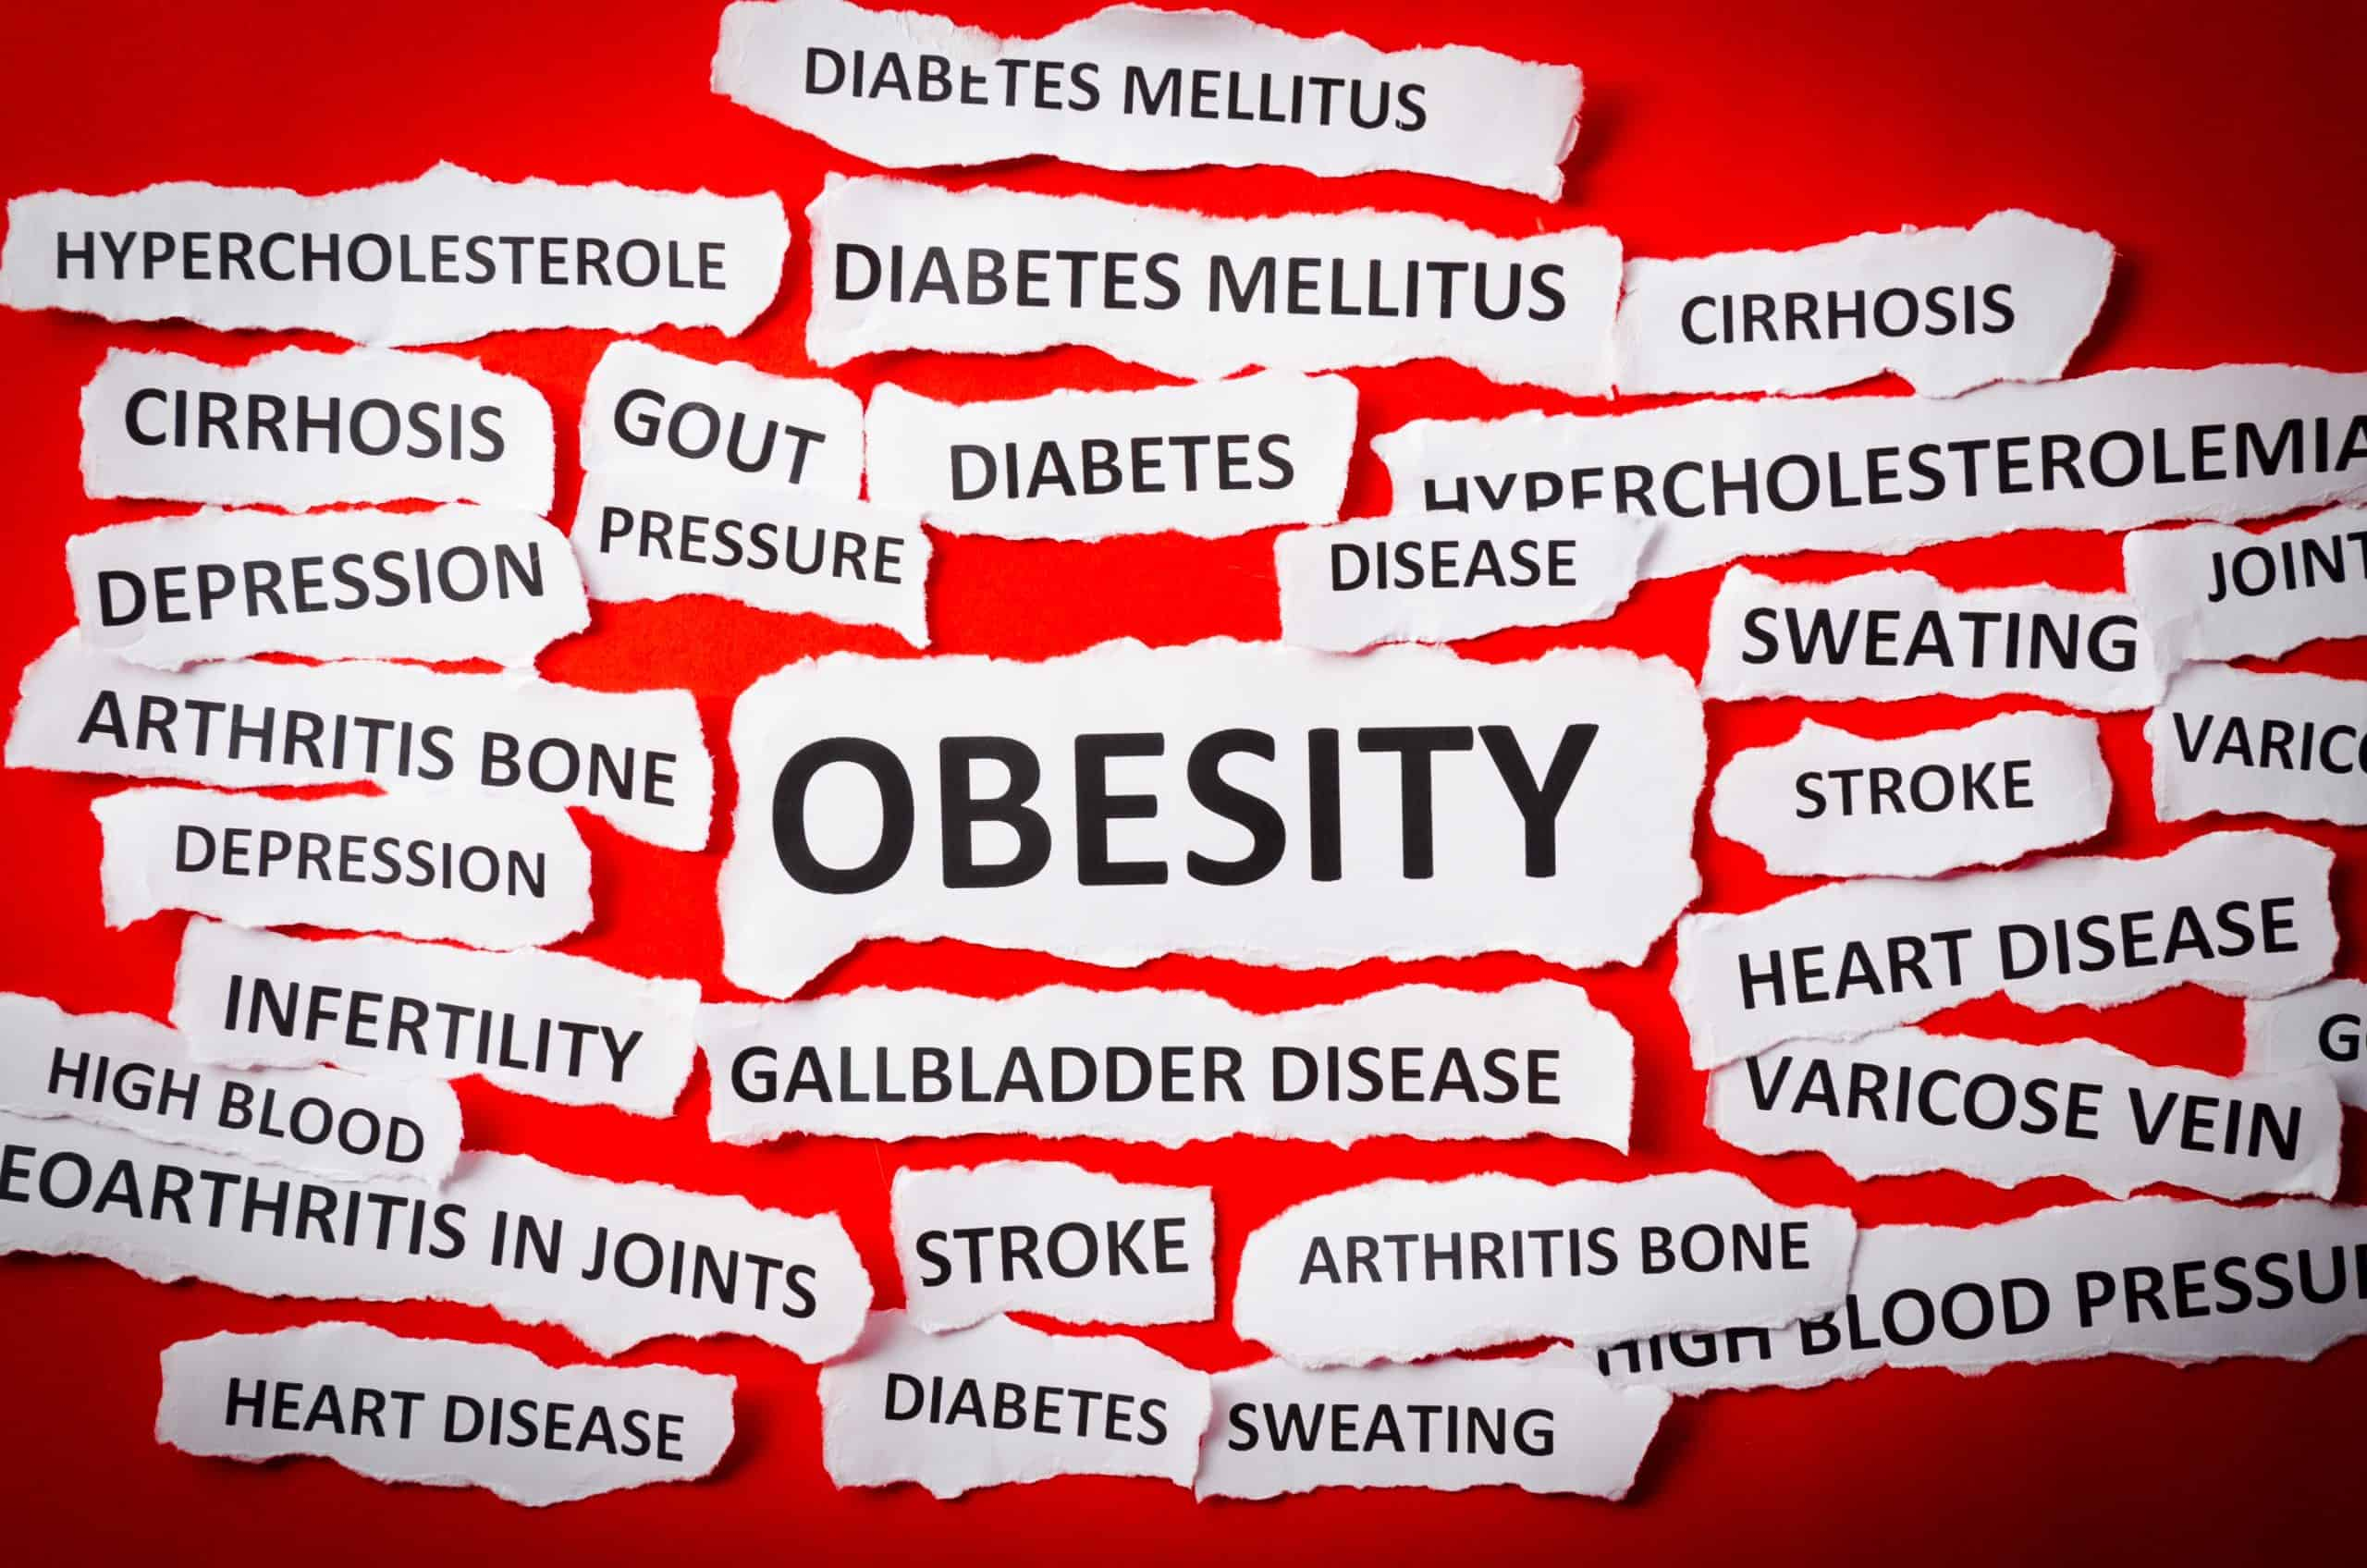 List of Conditions Linked to Obesity